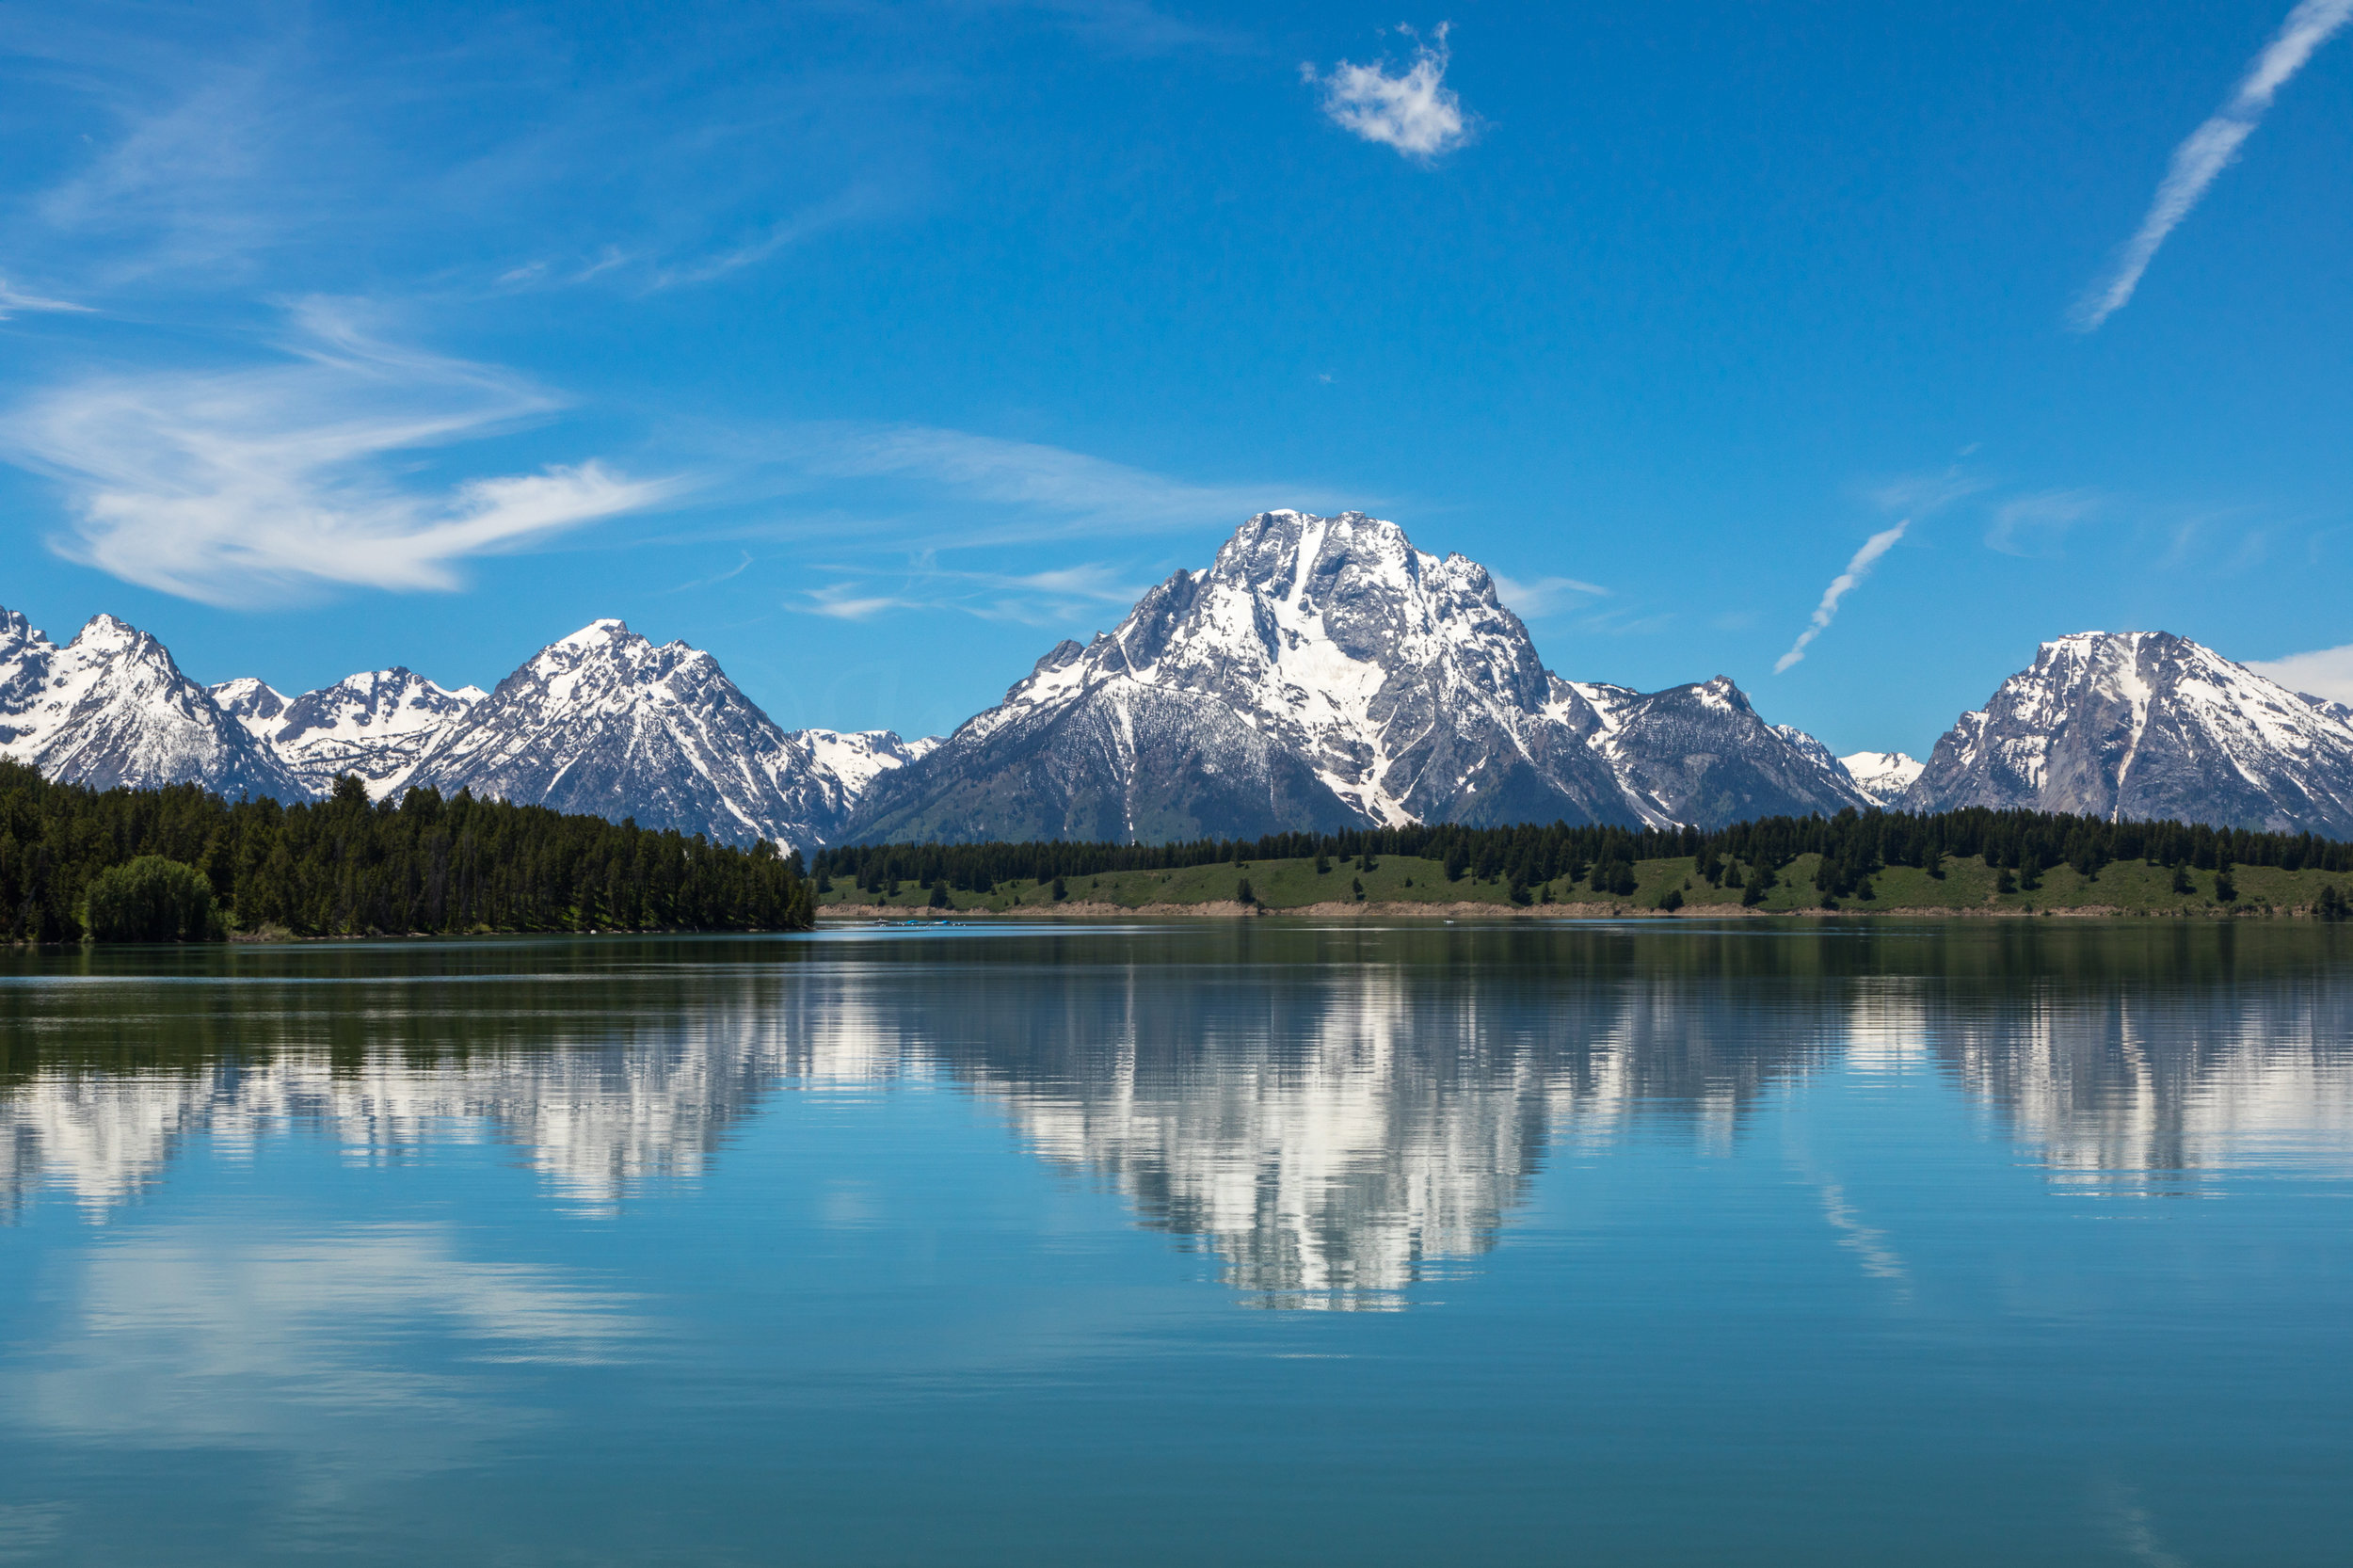 Reflection of Mount Moran in Jackson Lake, Image # 2535